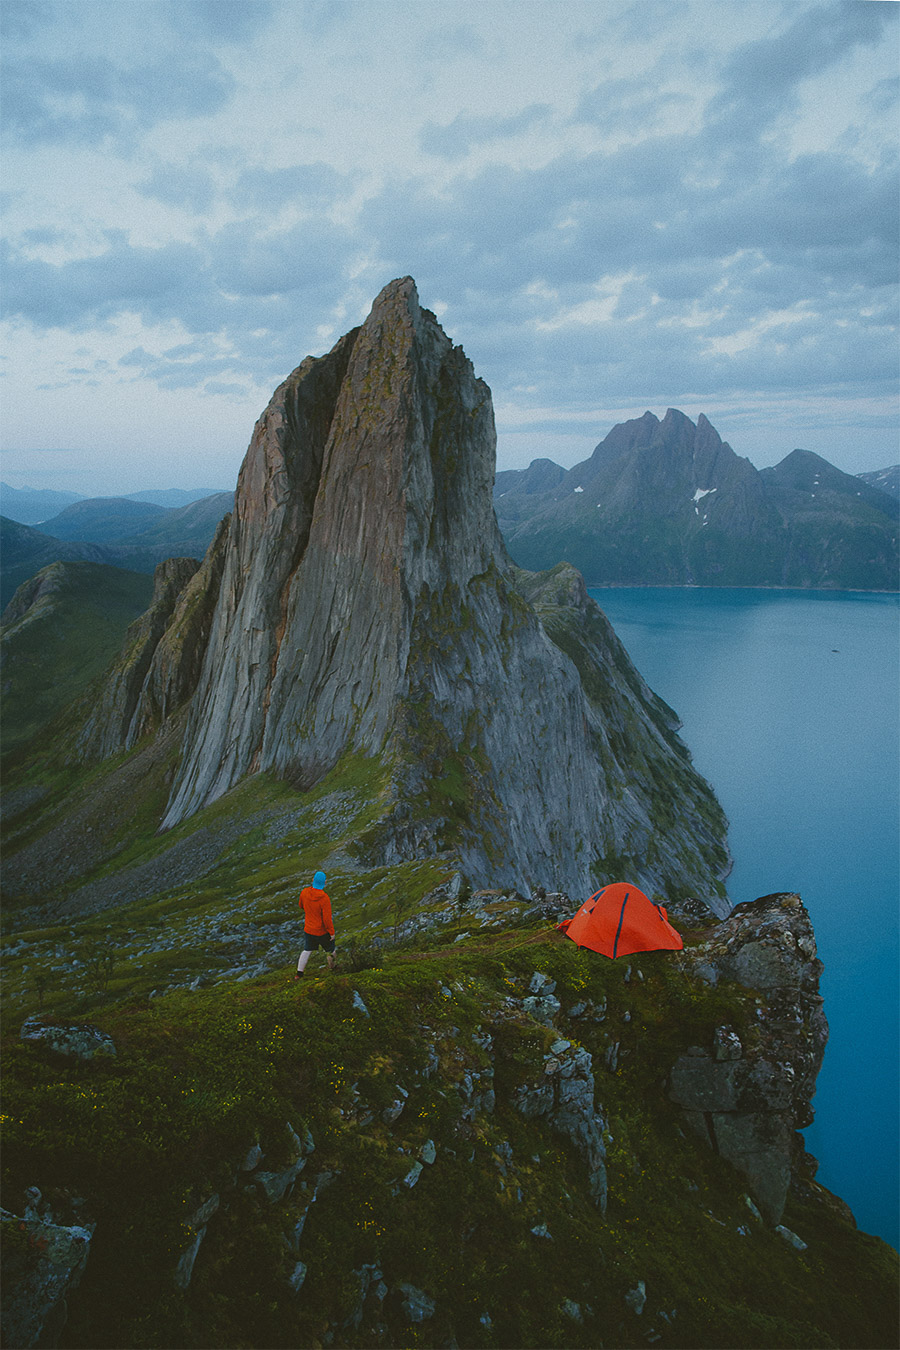 Orange tent and man in orange jacket in Senja